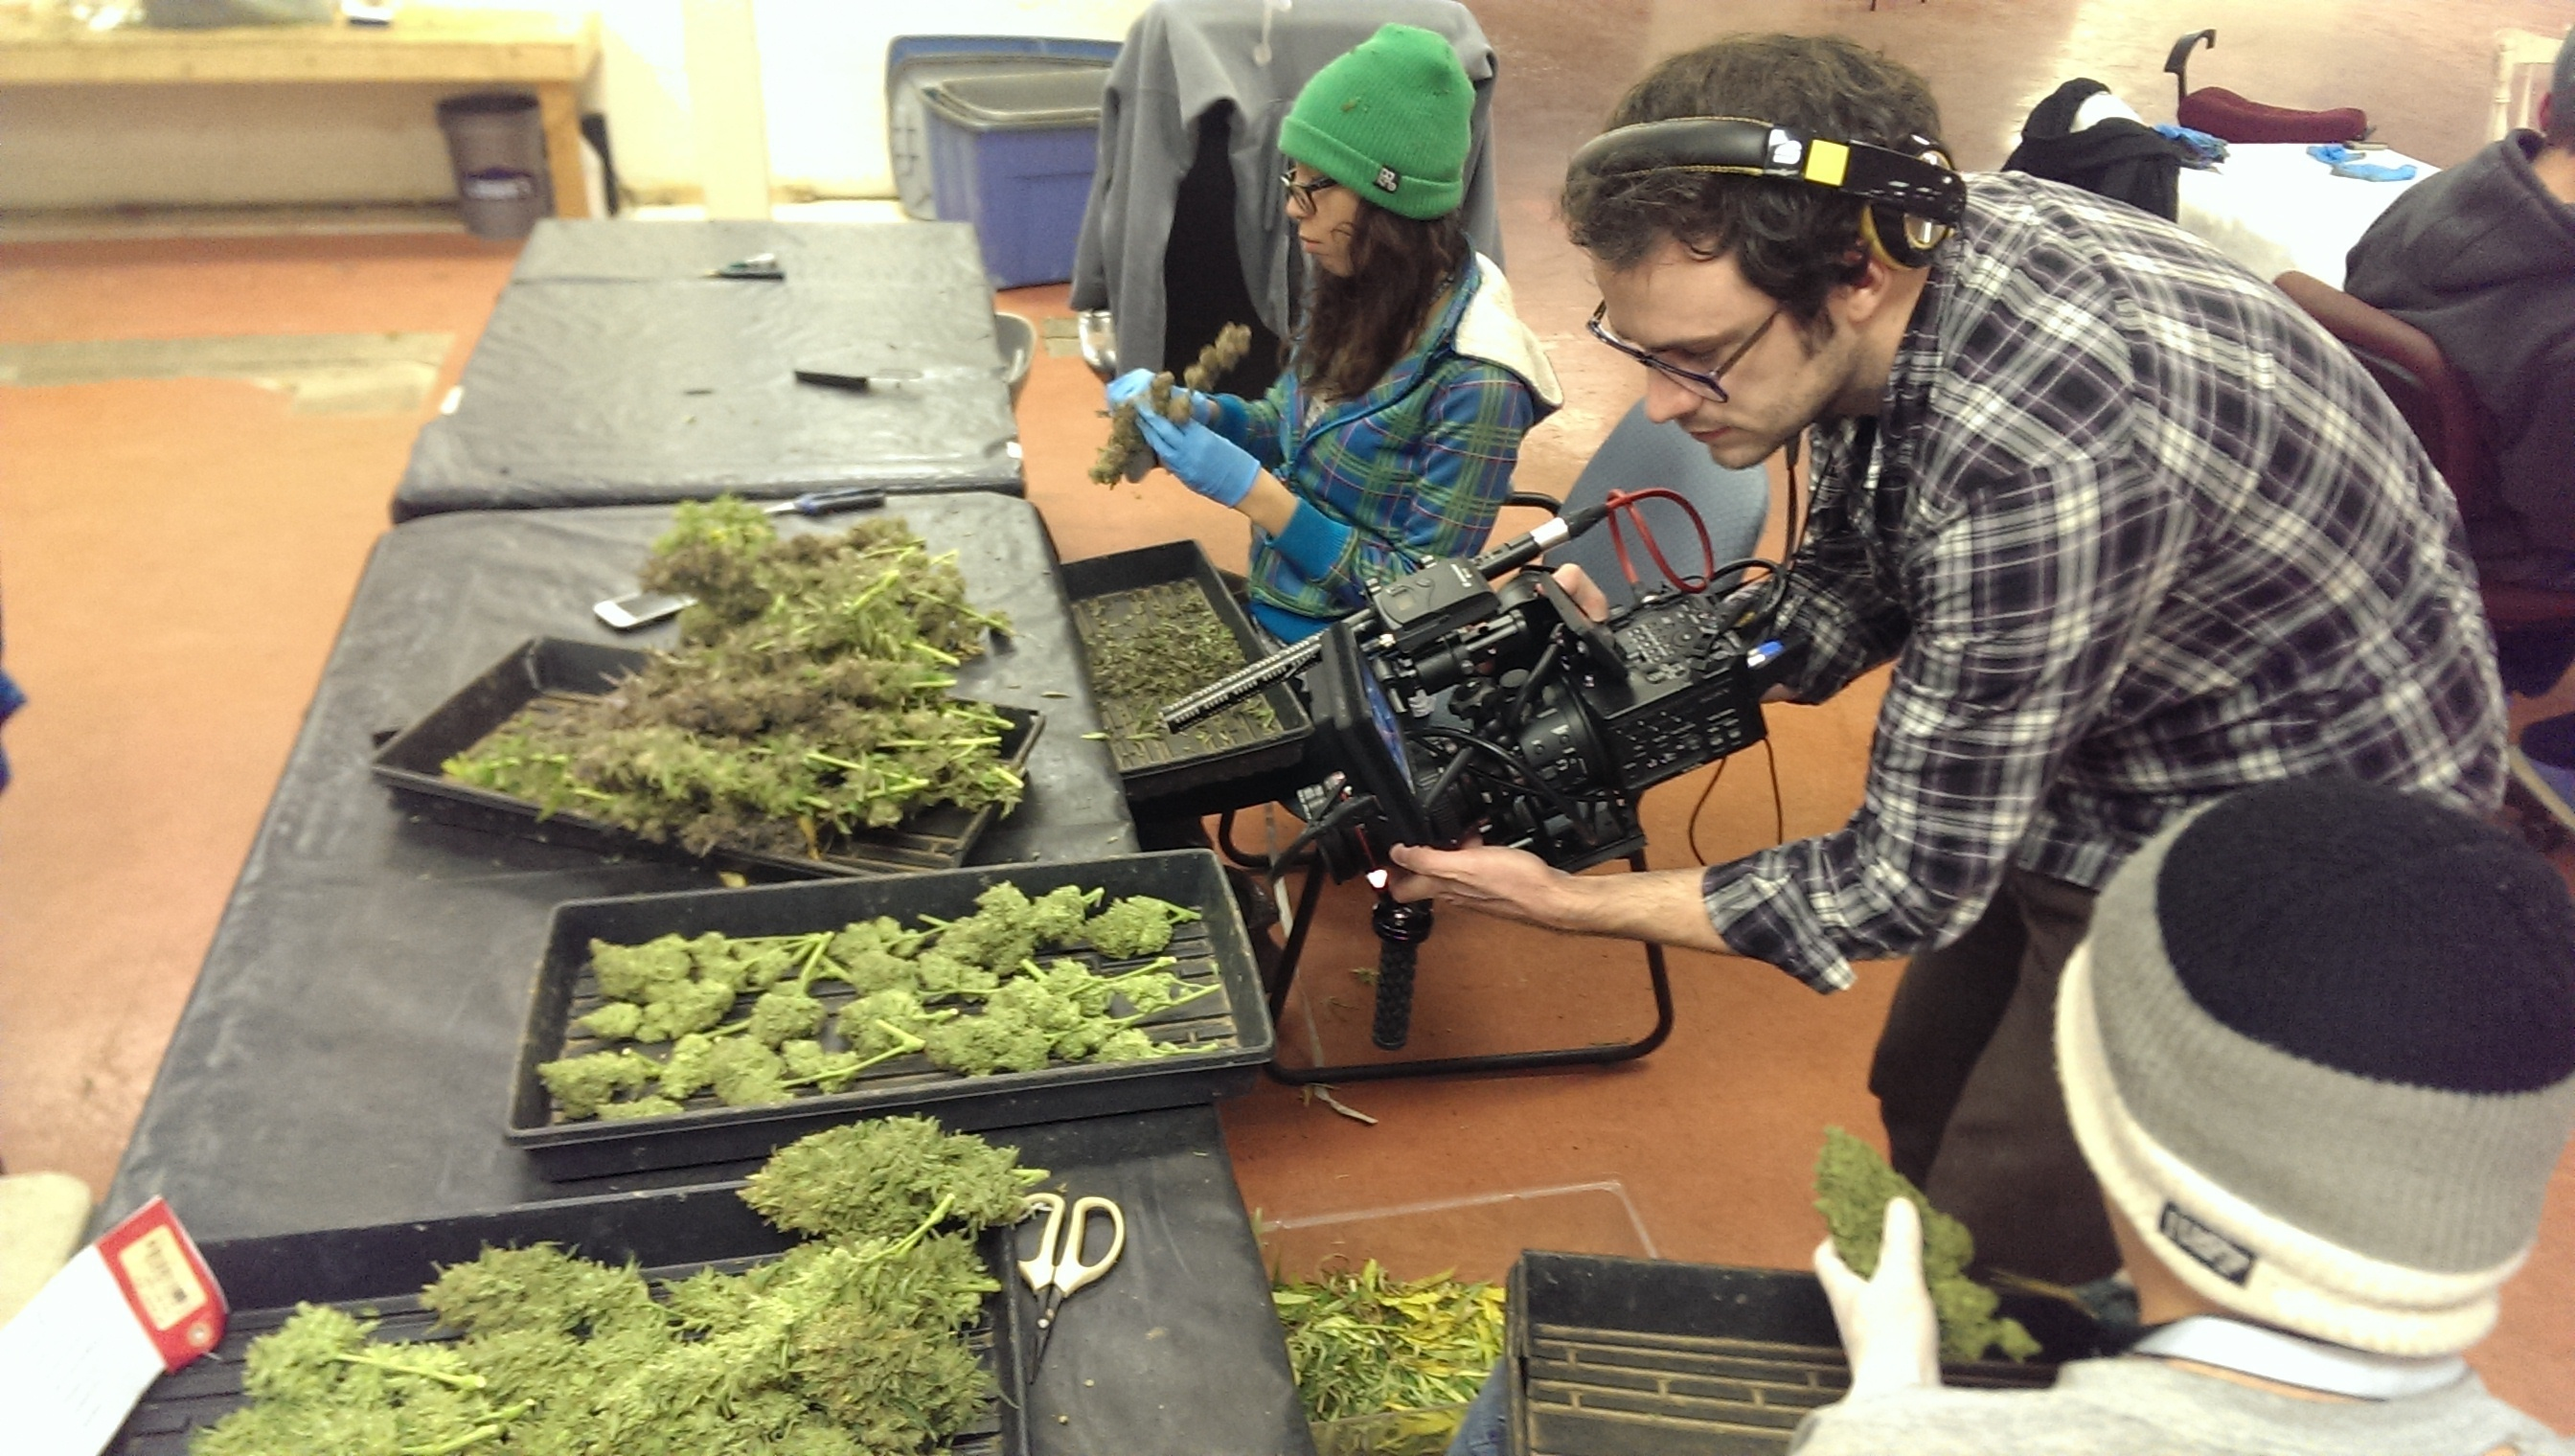 8 Must-See Documentaries About Marijuana